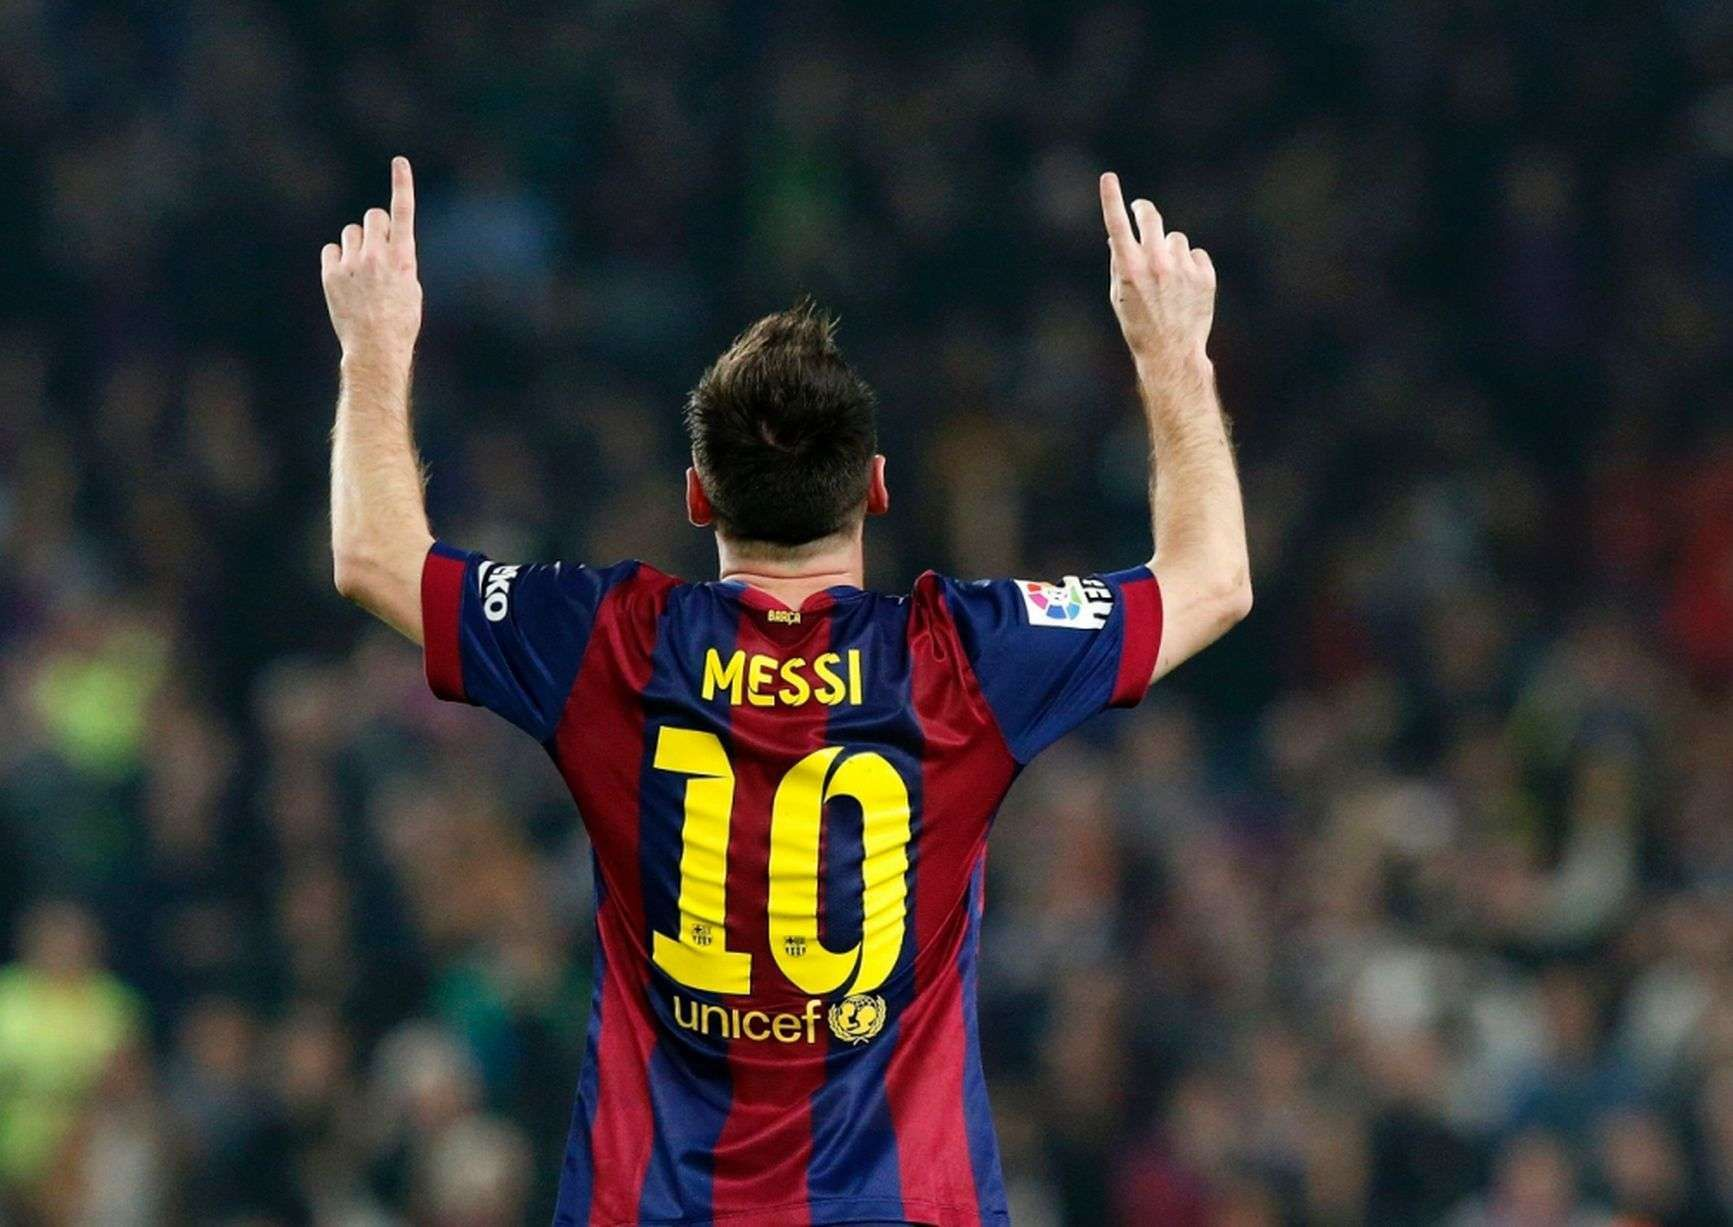 Hd wallpaper messi - Lionel Messi Iphone Hd Wallpaper 1600 1000 Messi Hd Wallpaper 64 Wallpapers